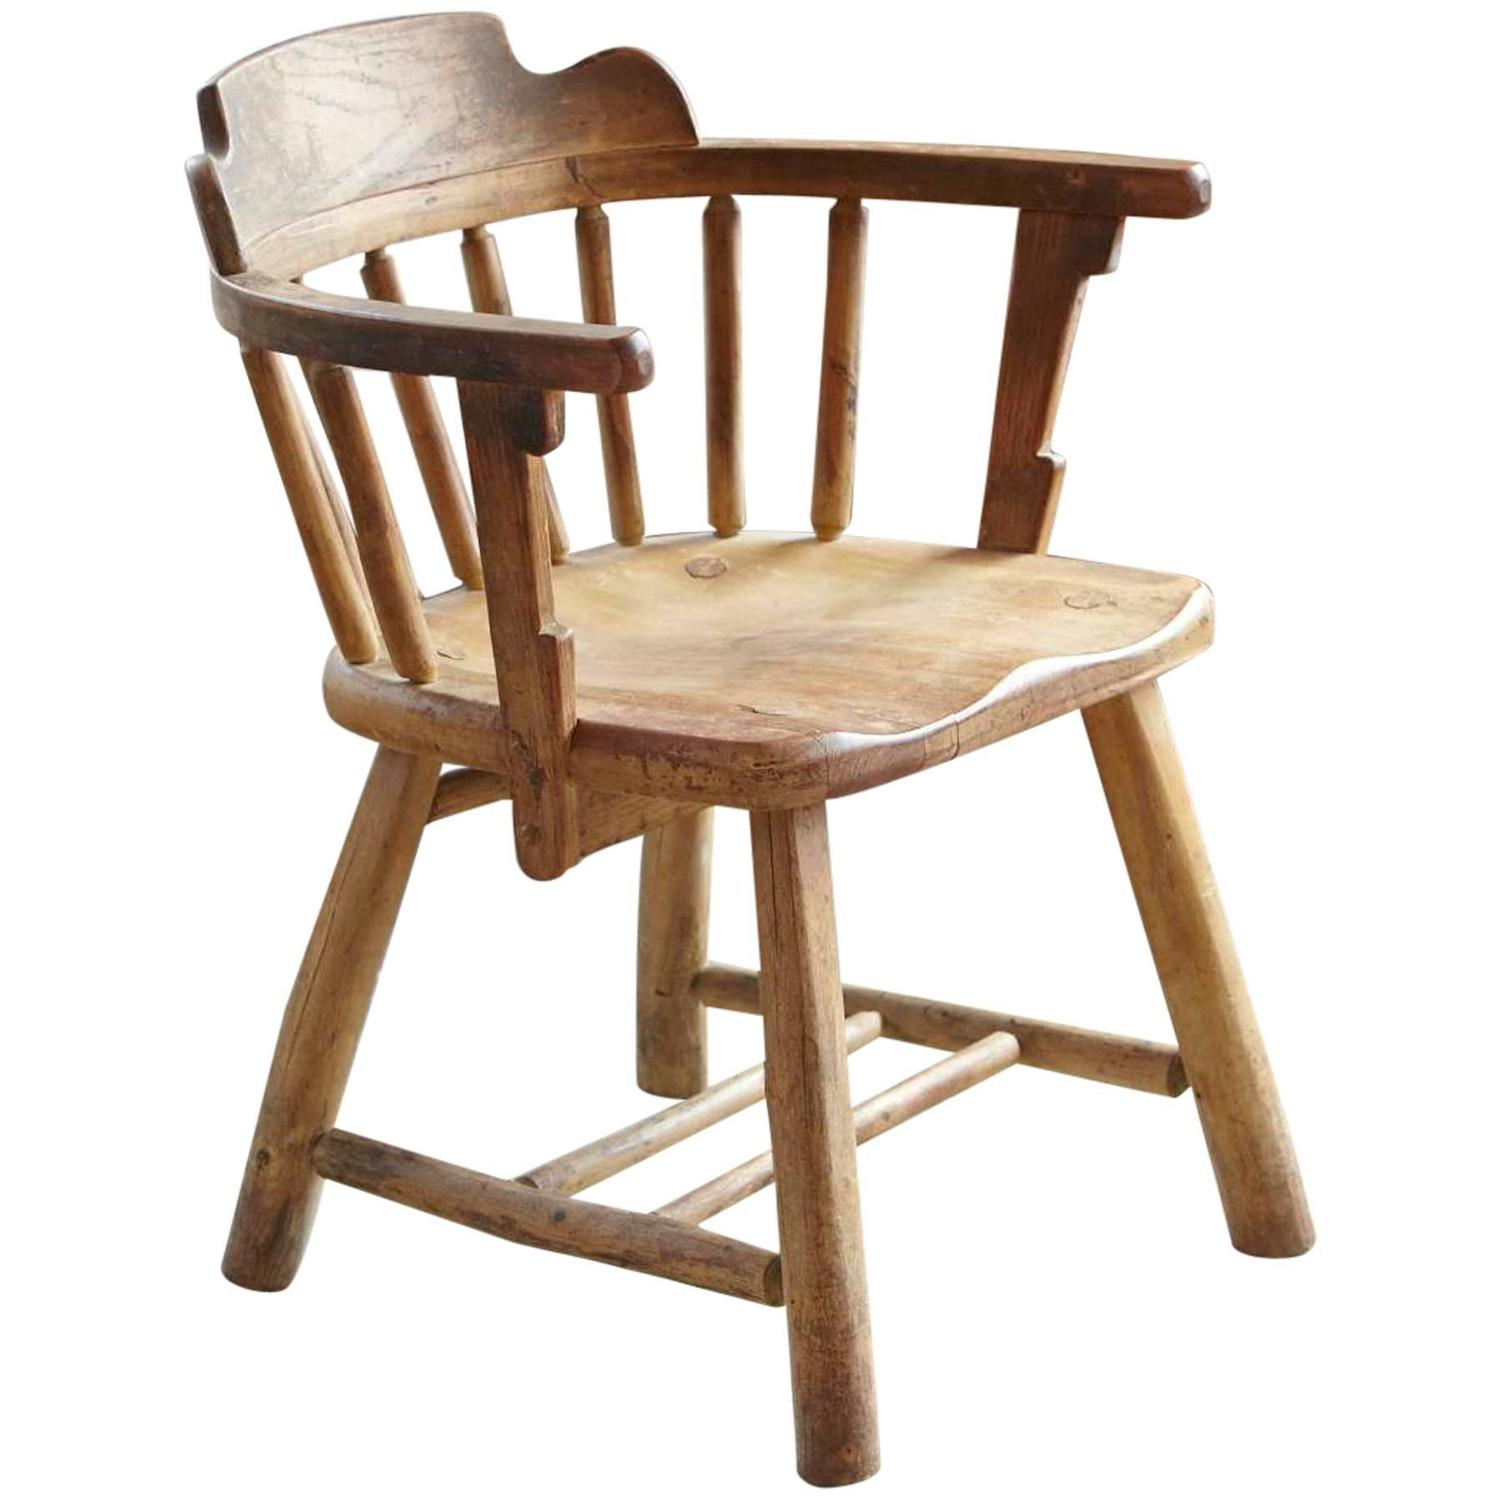 Antique Oak Barrel Chair - Barrel Chairs - 151 For Sale On 1stdibs